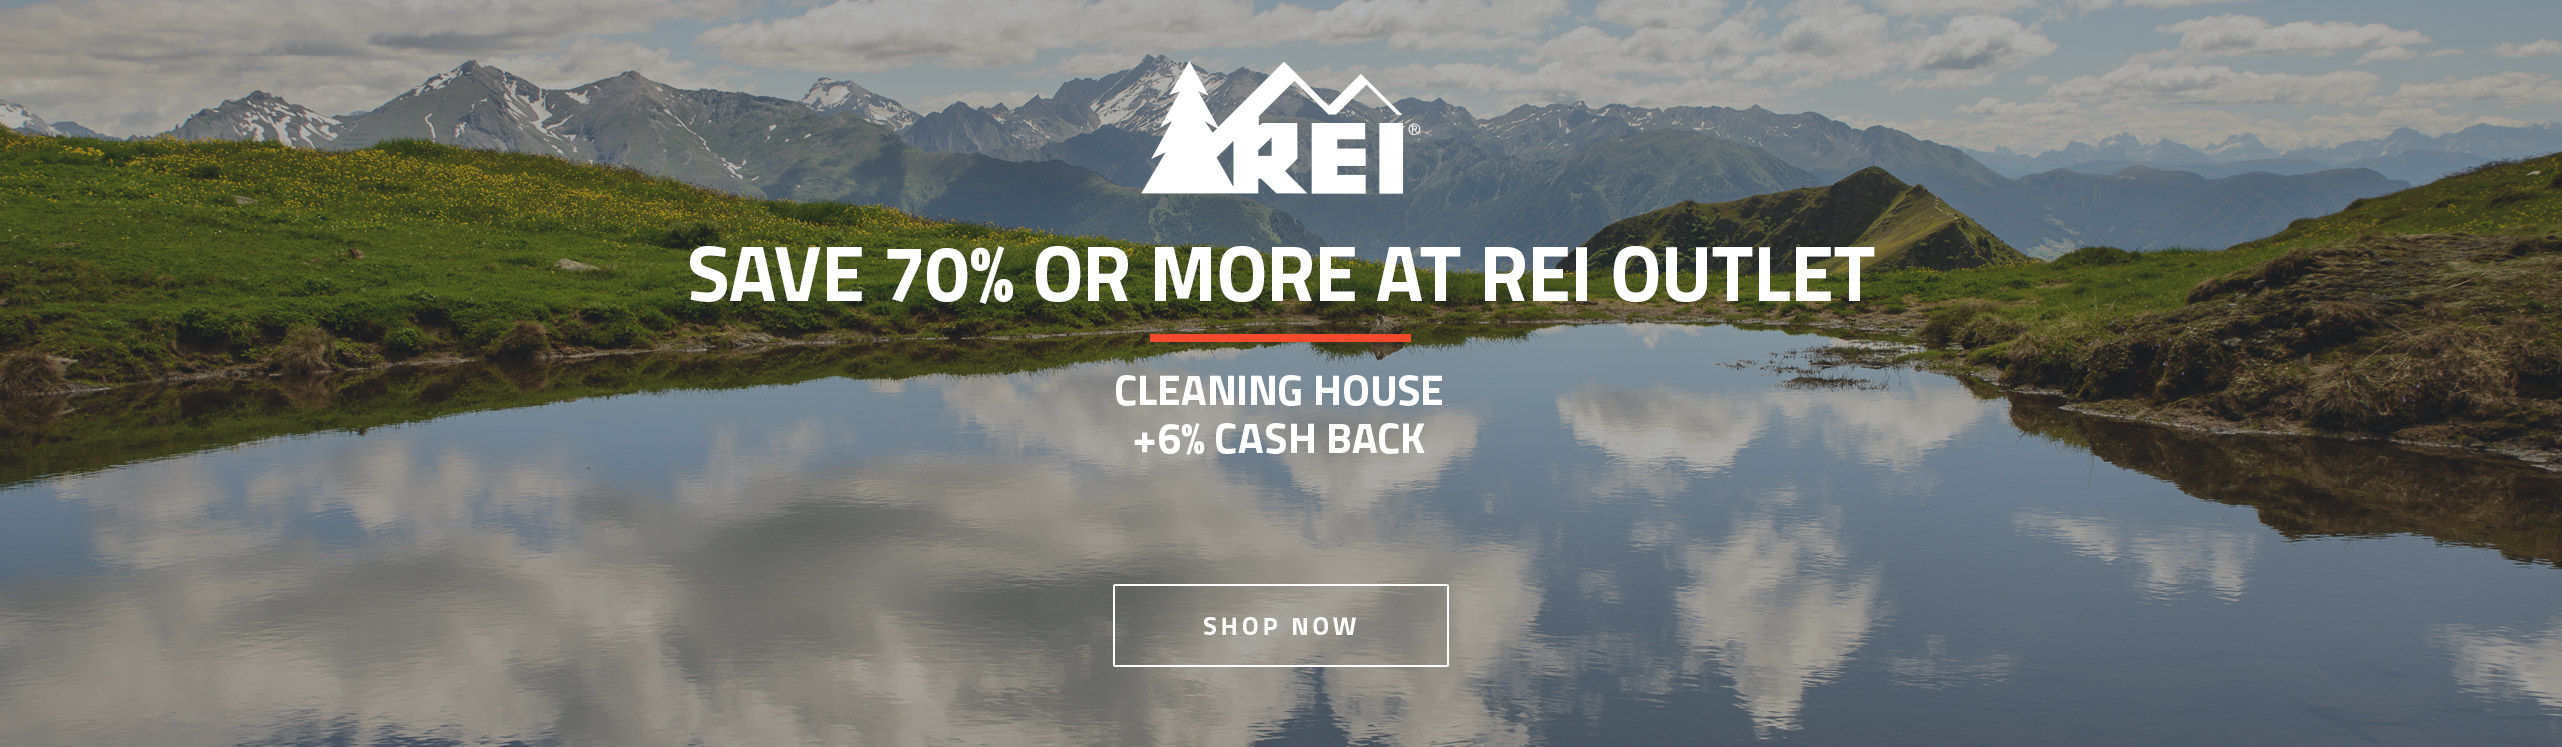 REI Outlet Sale